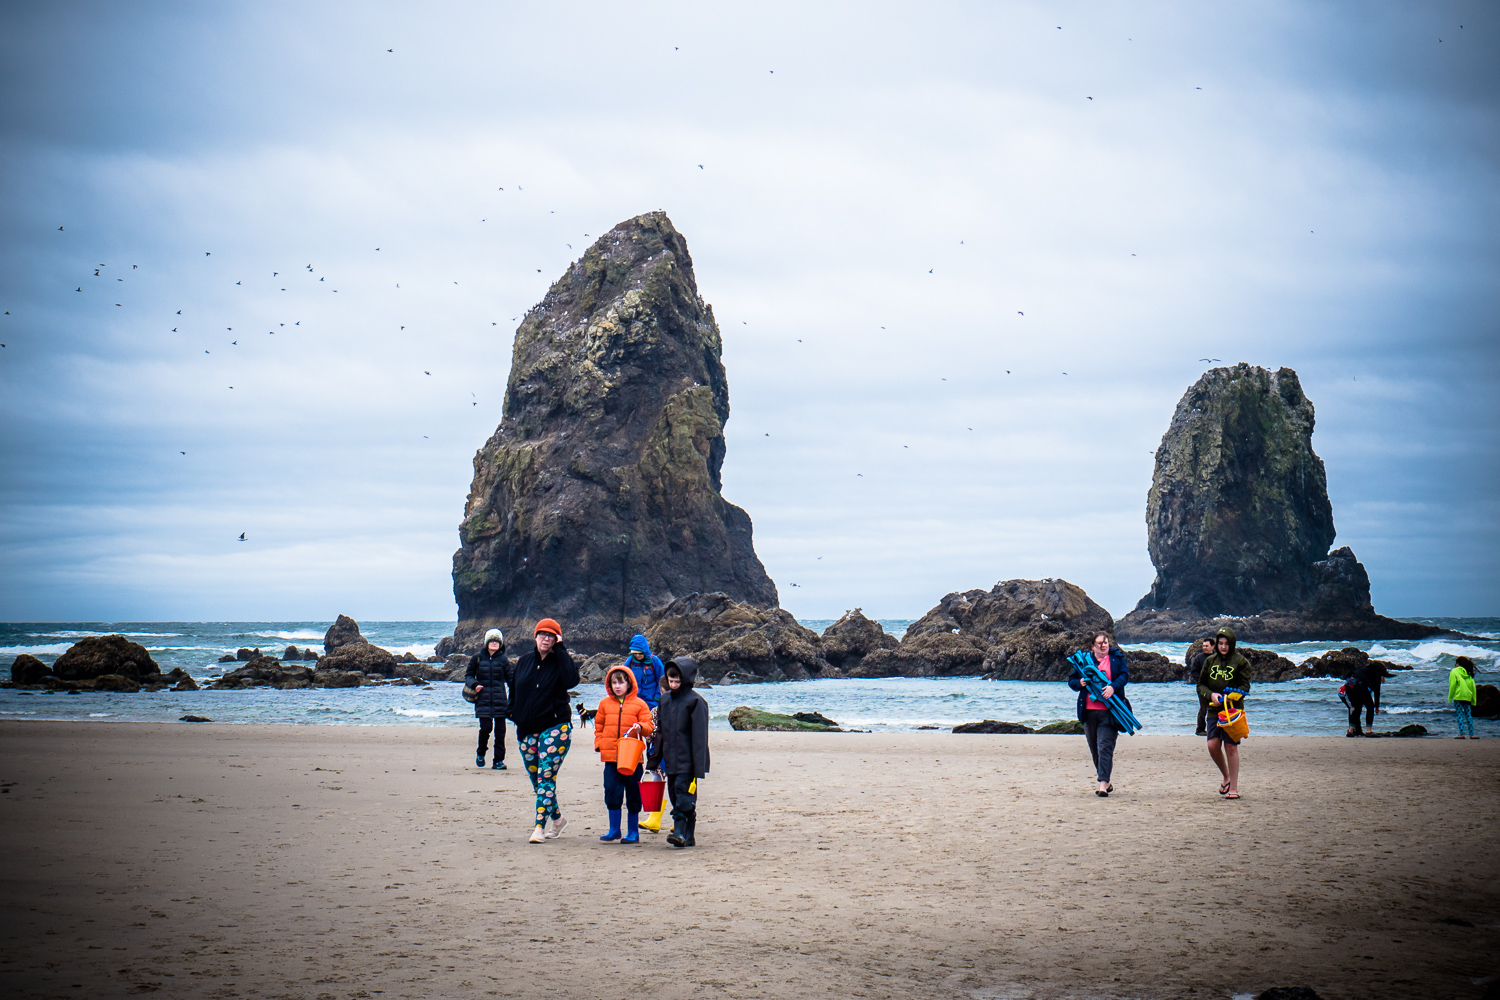 04-cannonbeach-6.jpg